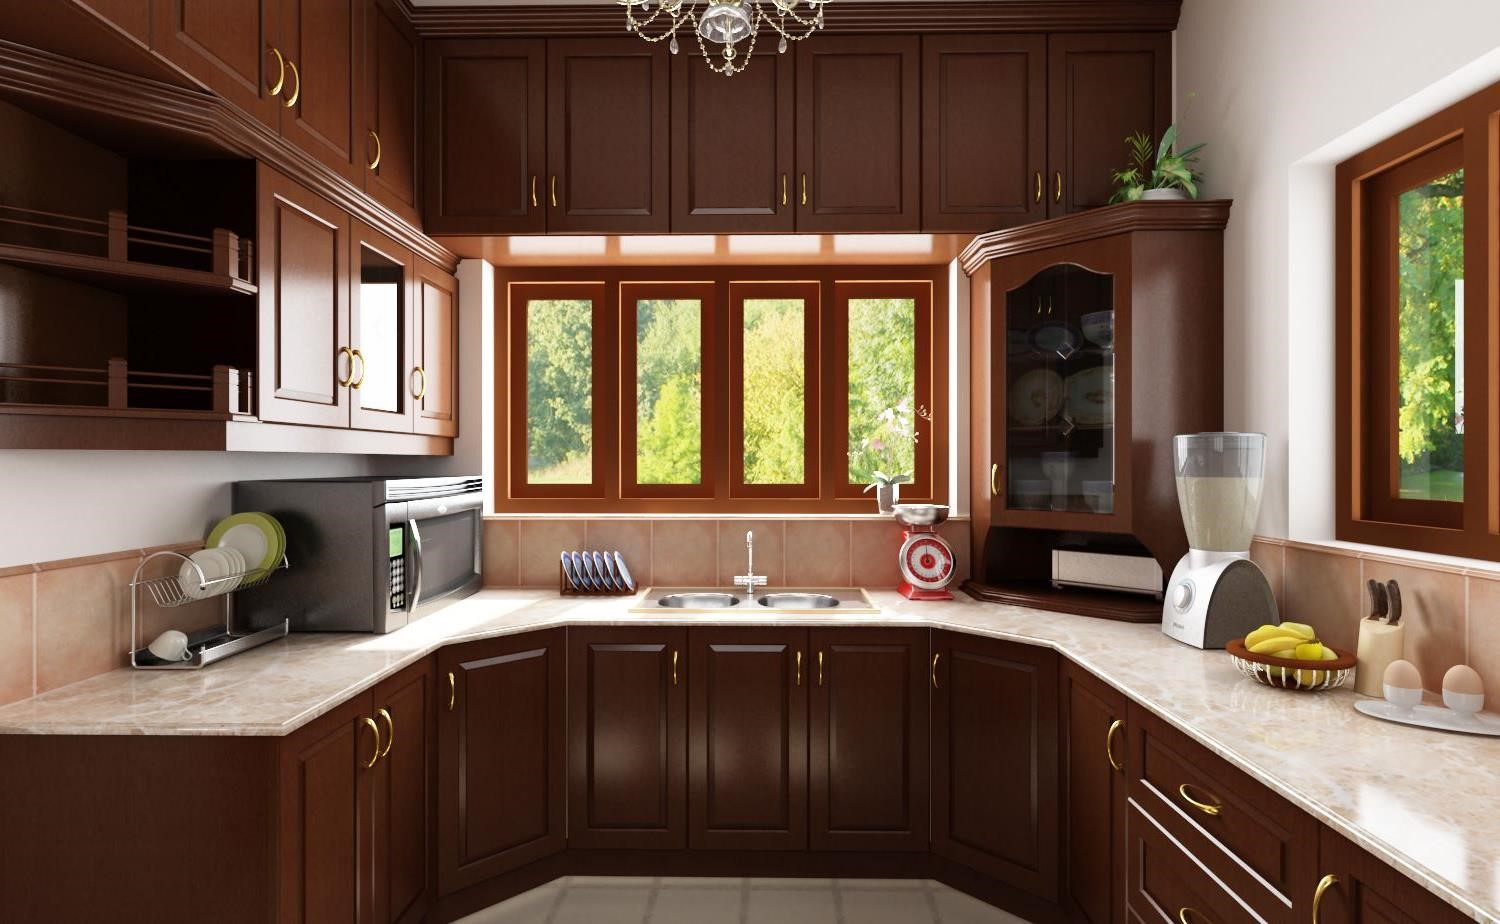 Traditional Indian Kitchen Design traditional kitchen design on formality  and functionality